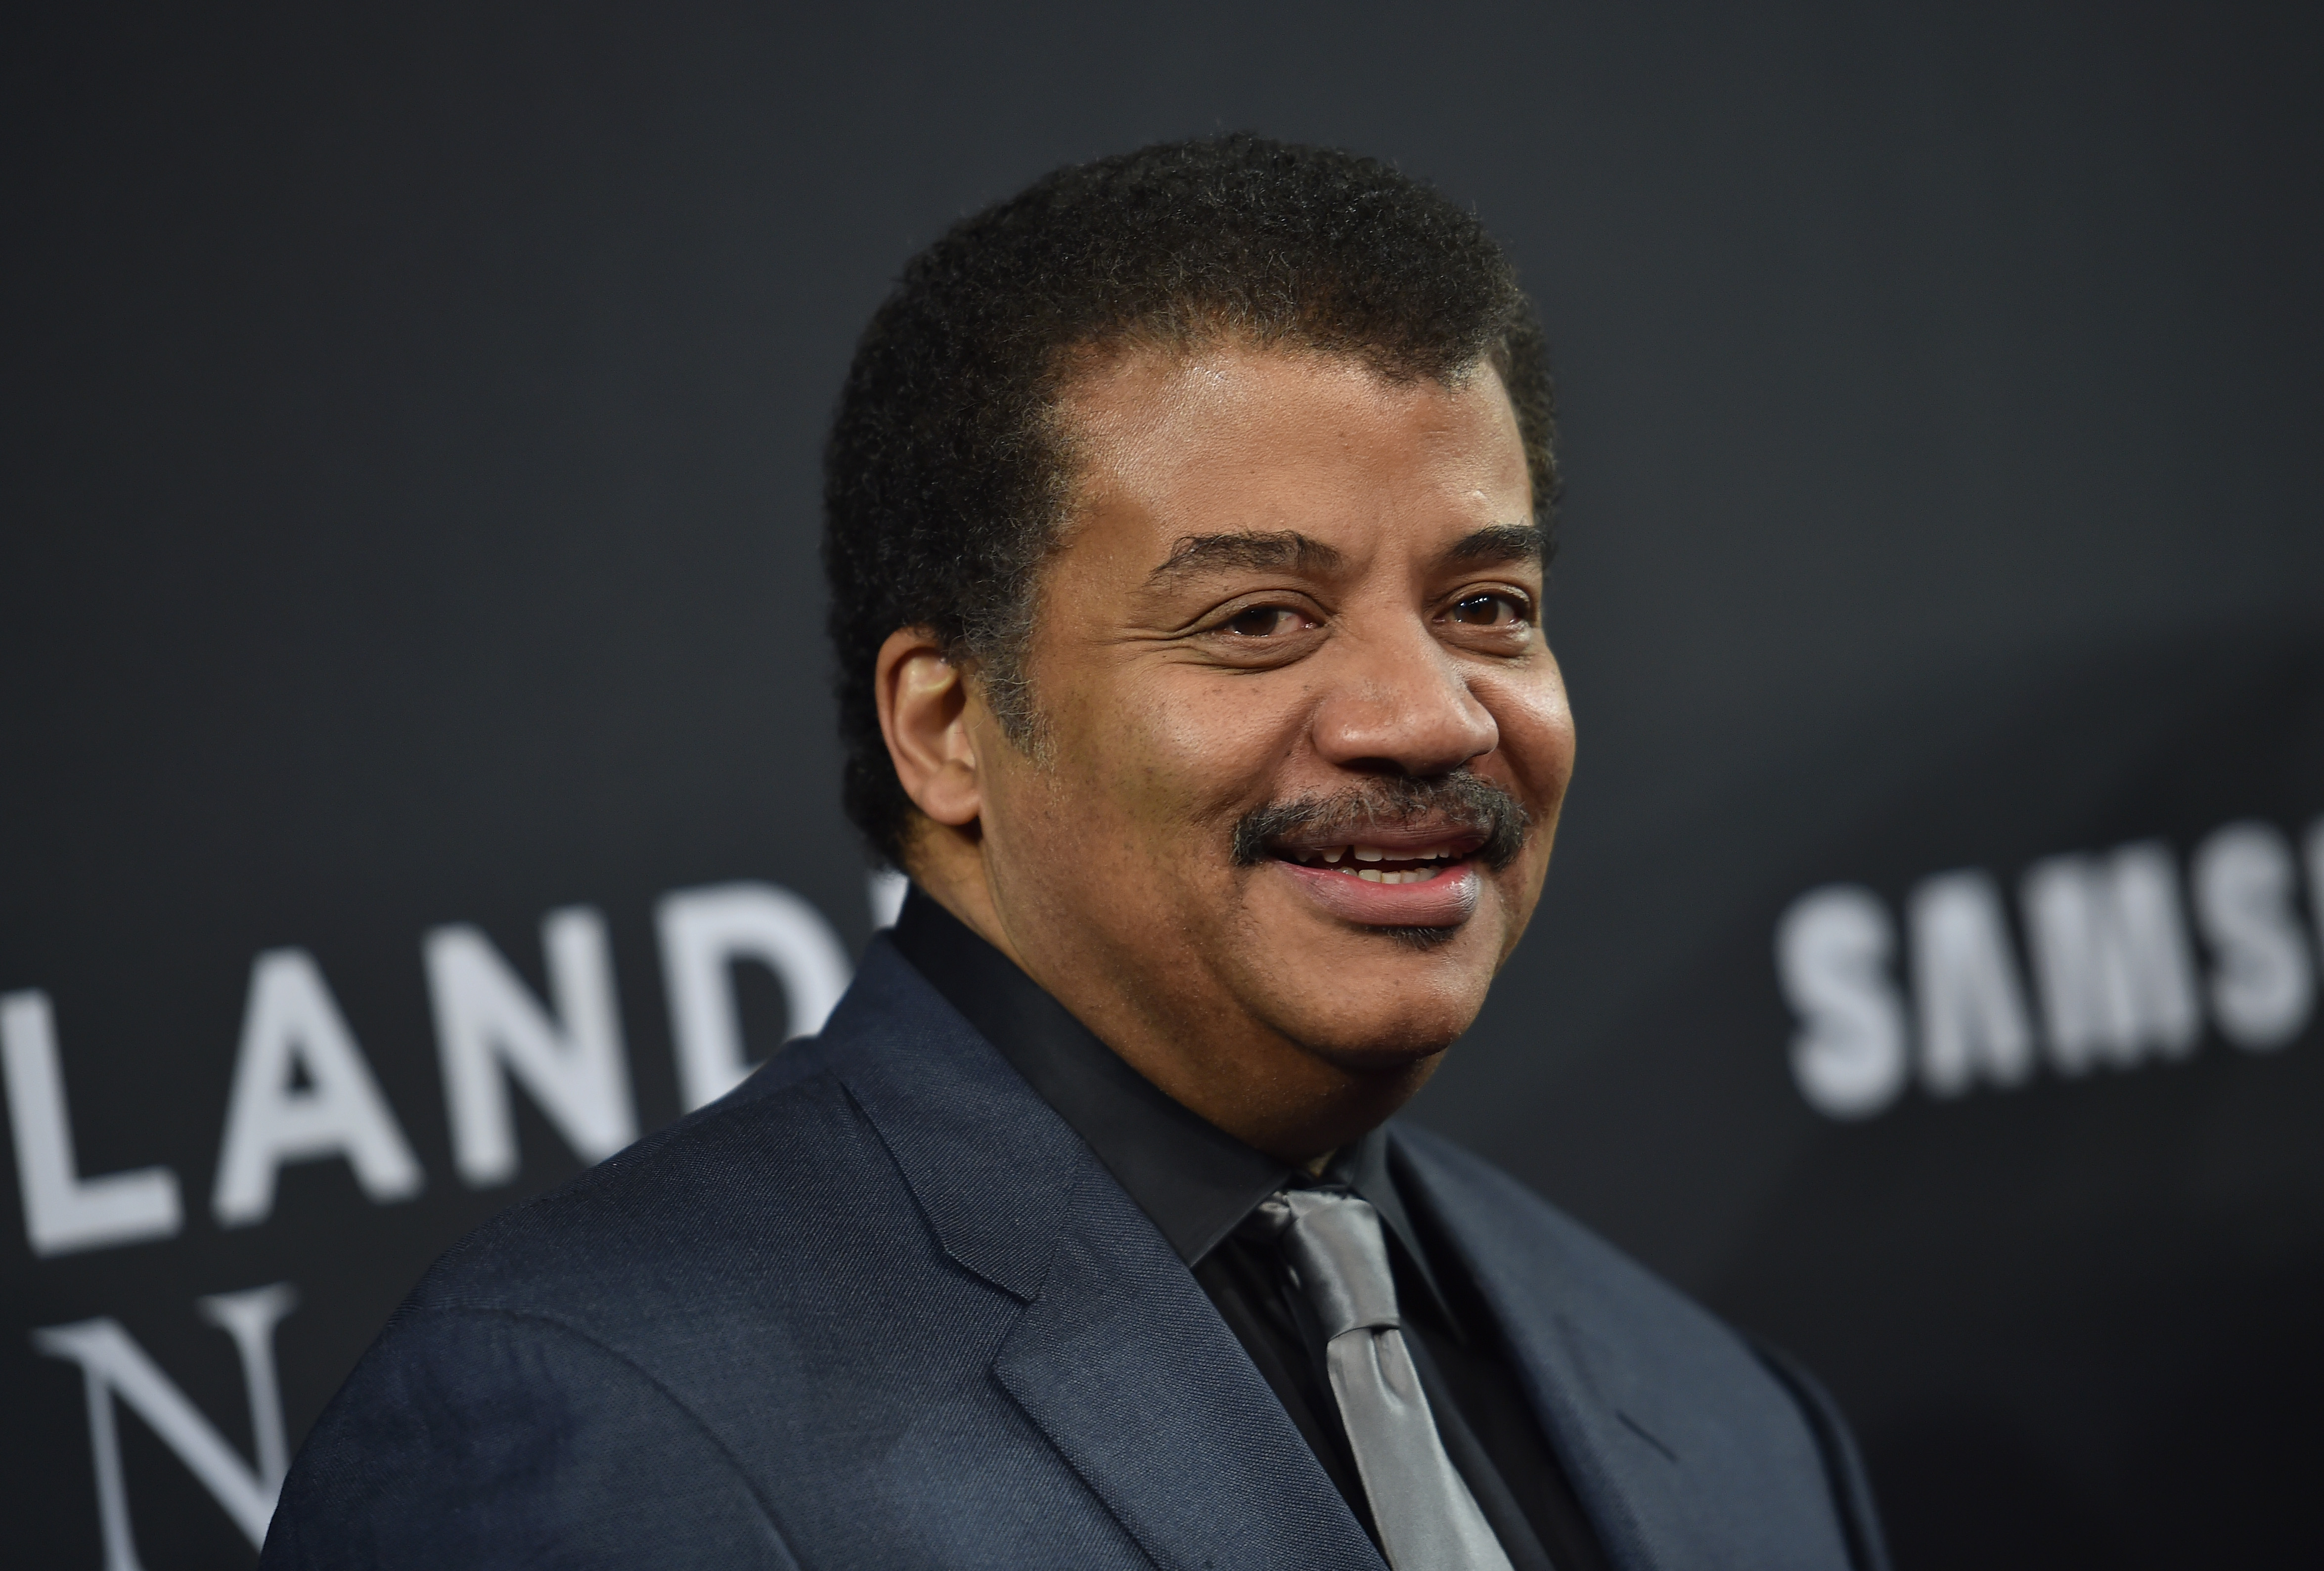 Neil deGrasse Tyson attends the  Zoolander 2  World Premiere at Alice Tully Hall on February 9, 2016 in New York City.